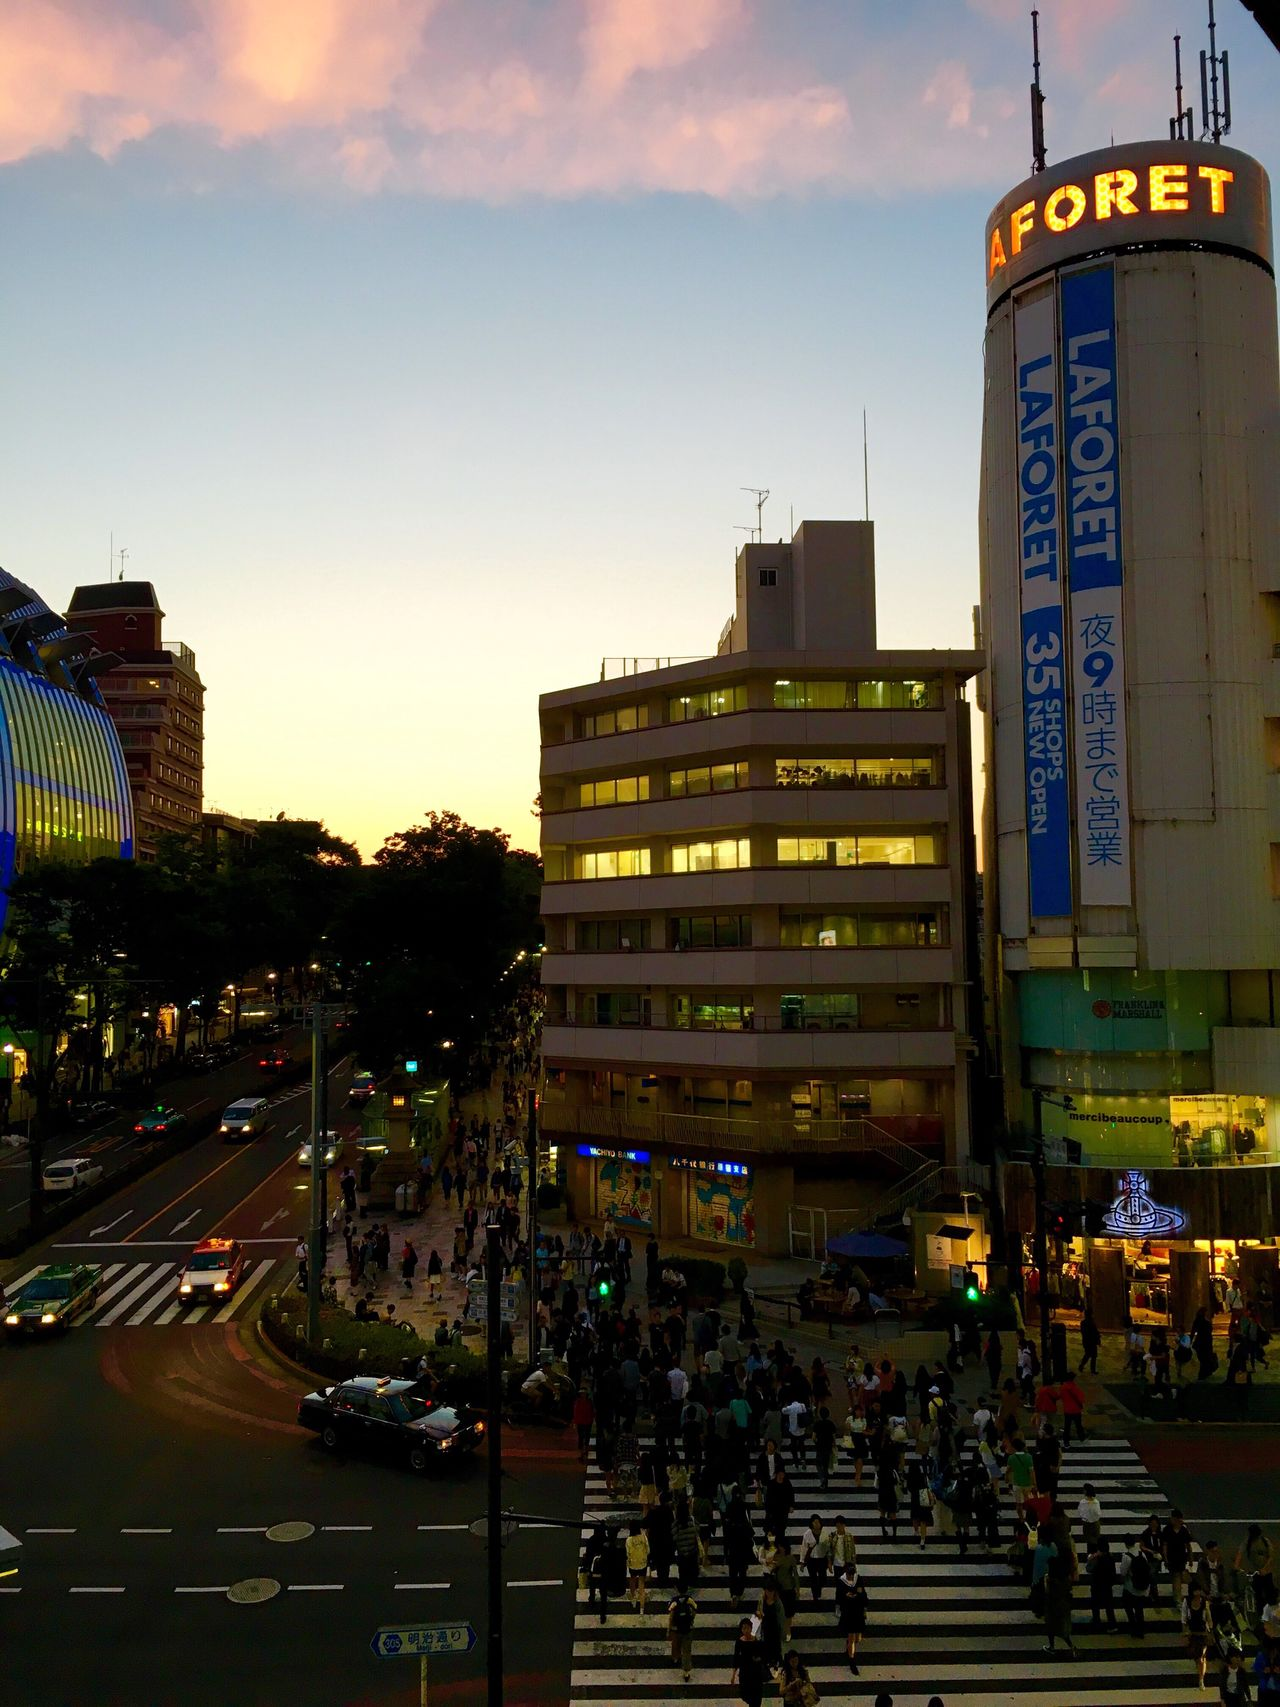 6:38pm Cities At Night EyeEm Best Shots - Night Photography EyeEm Best Shots EyeEm Best Shots - Sunsets + Sunrise Omotesando HarajukuCity City City Life 表参道 Sunsetlovers Sunset Lovers Sunsetphotographs Sunset Sunset Collection Things I Like Everything In Its Place Helloworld Hello World Harajuku Gradation Myfavoritephoto Tokyo,Japan Upclose Street Photography Up Close Street Photography